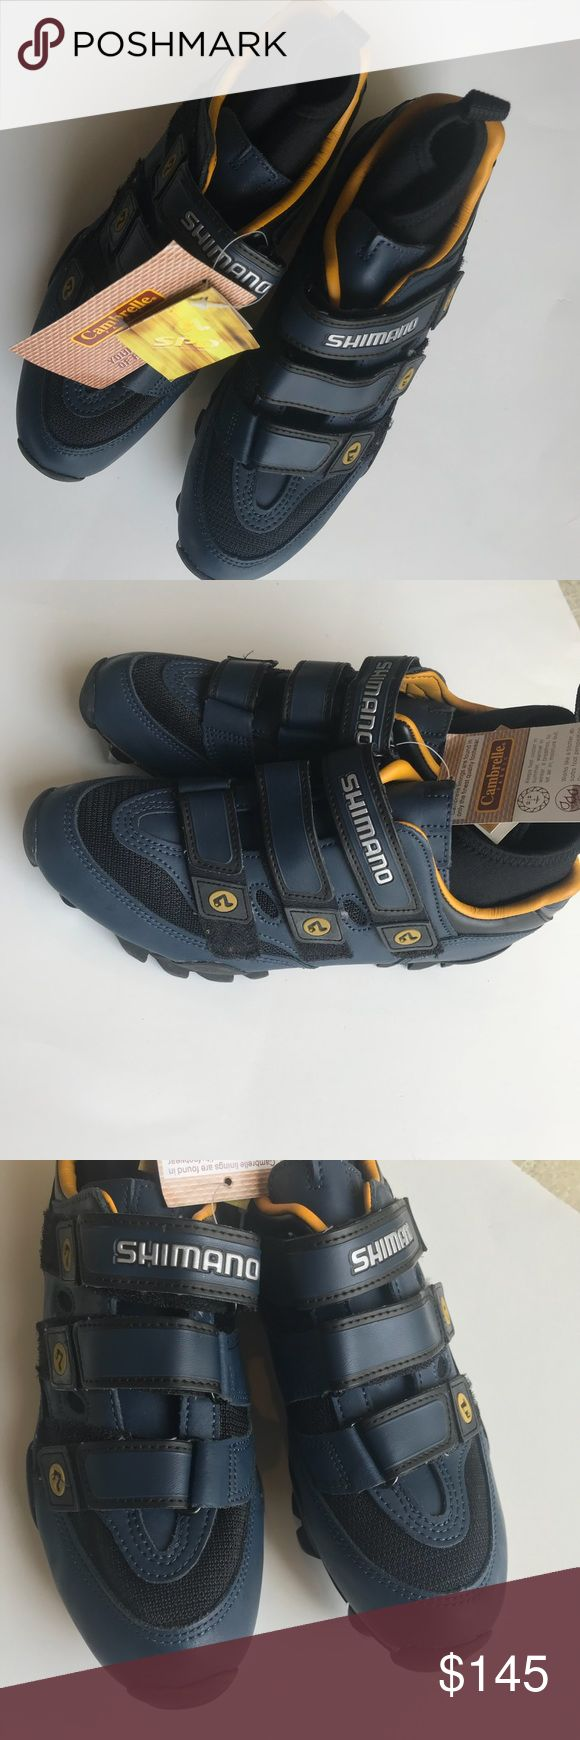 NWT cycling shoes Shimano 42 Euro 9.5 US Excellent condition. New with tags.                             Cambrelle fabric. Keeps feet cooler in summer and warmer in winter. It breathes to let air in moisture out.   Navy blue and black Shimano Shoes Athletic Shoes